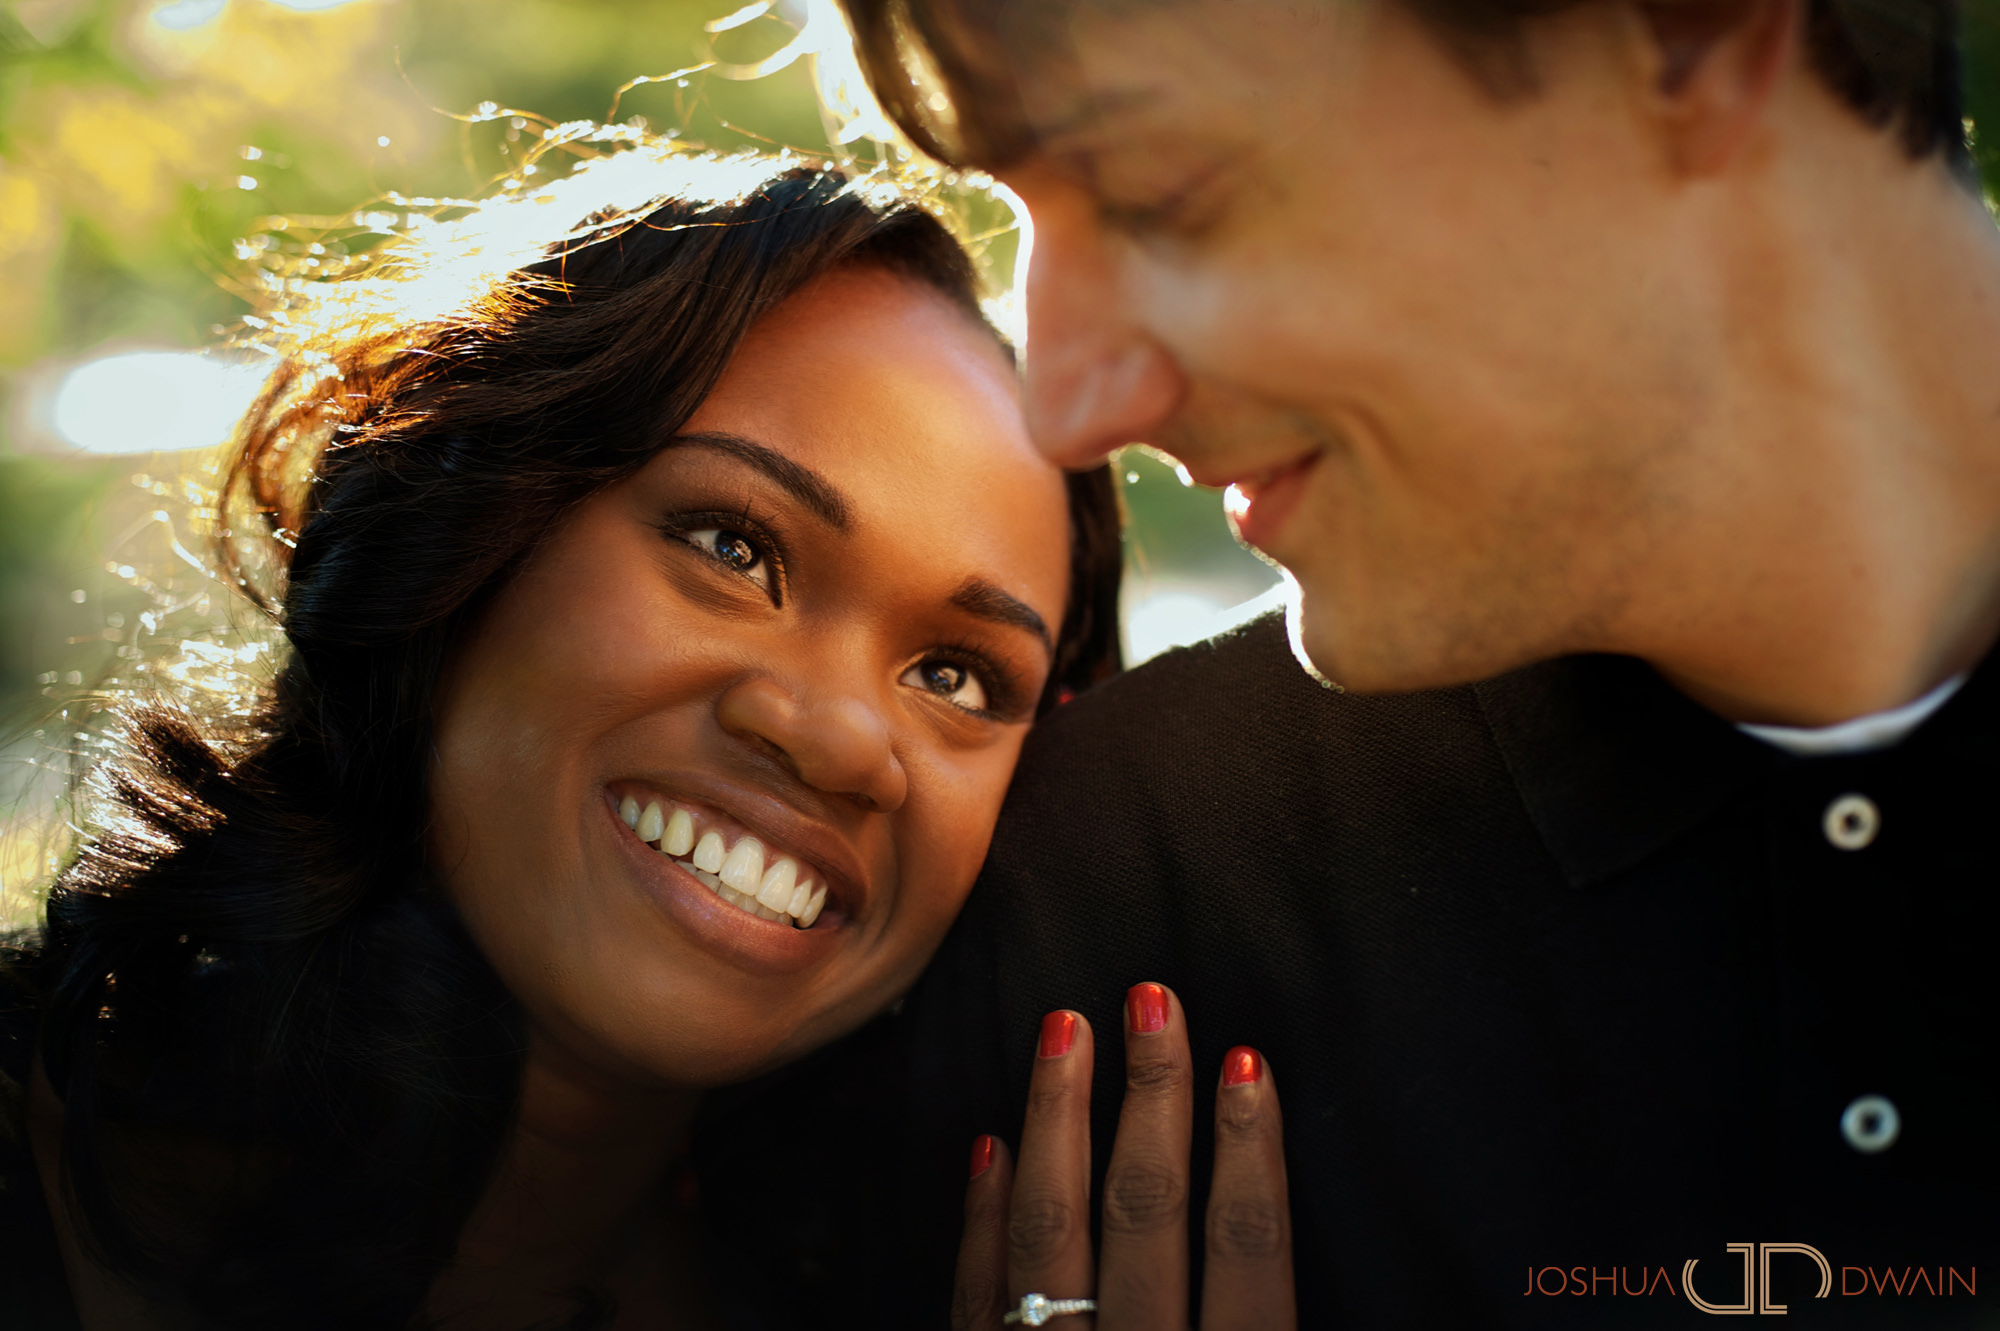 fritzie-stephen-005-central-park-new-york-city-ny-engagement-photographer-joshua-dwain-2011-11-05_fs_024